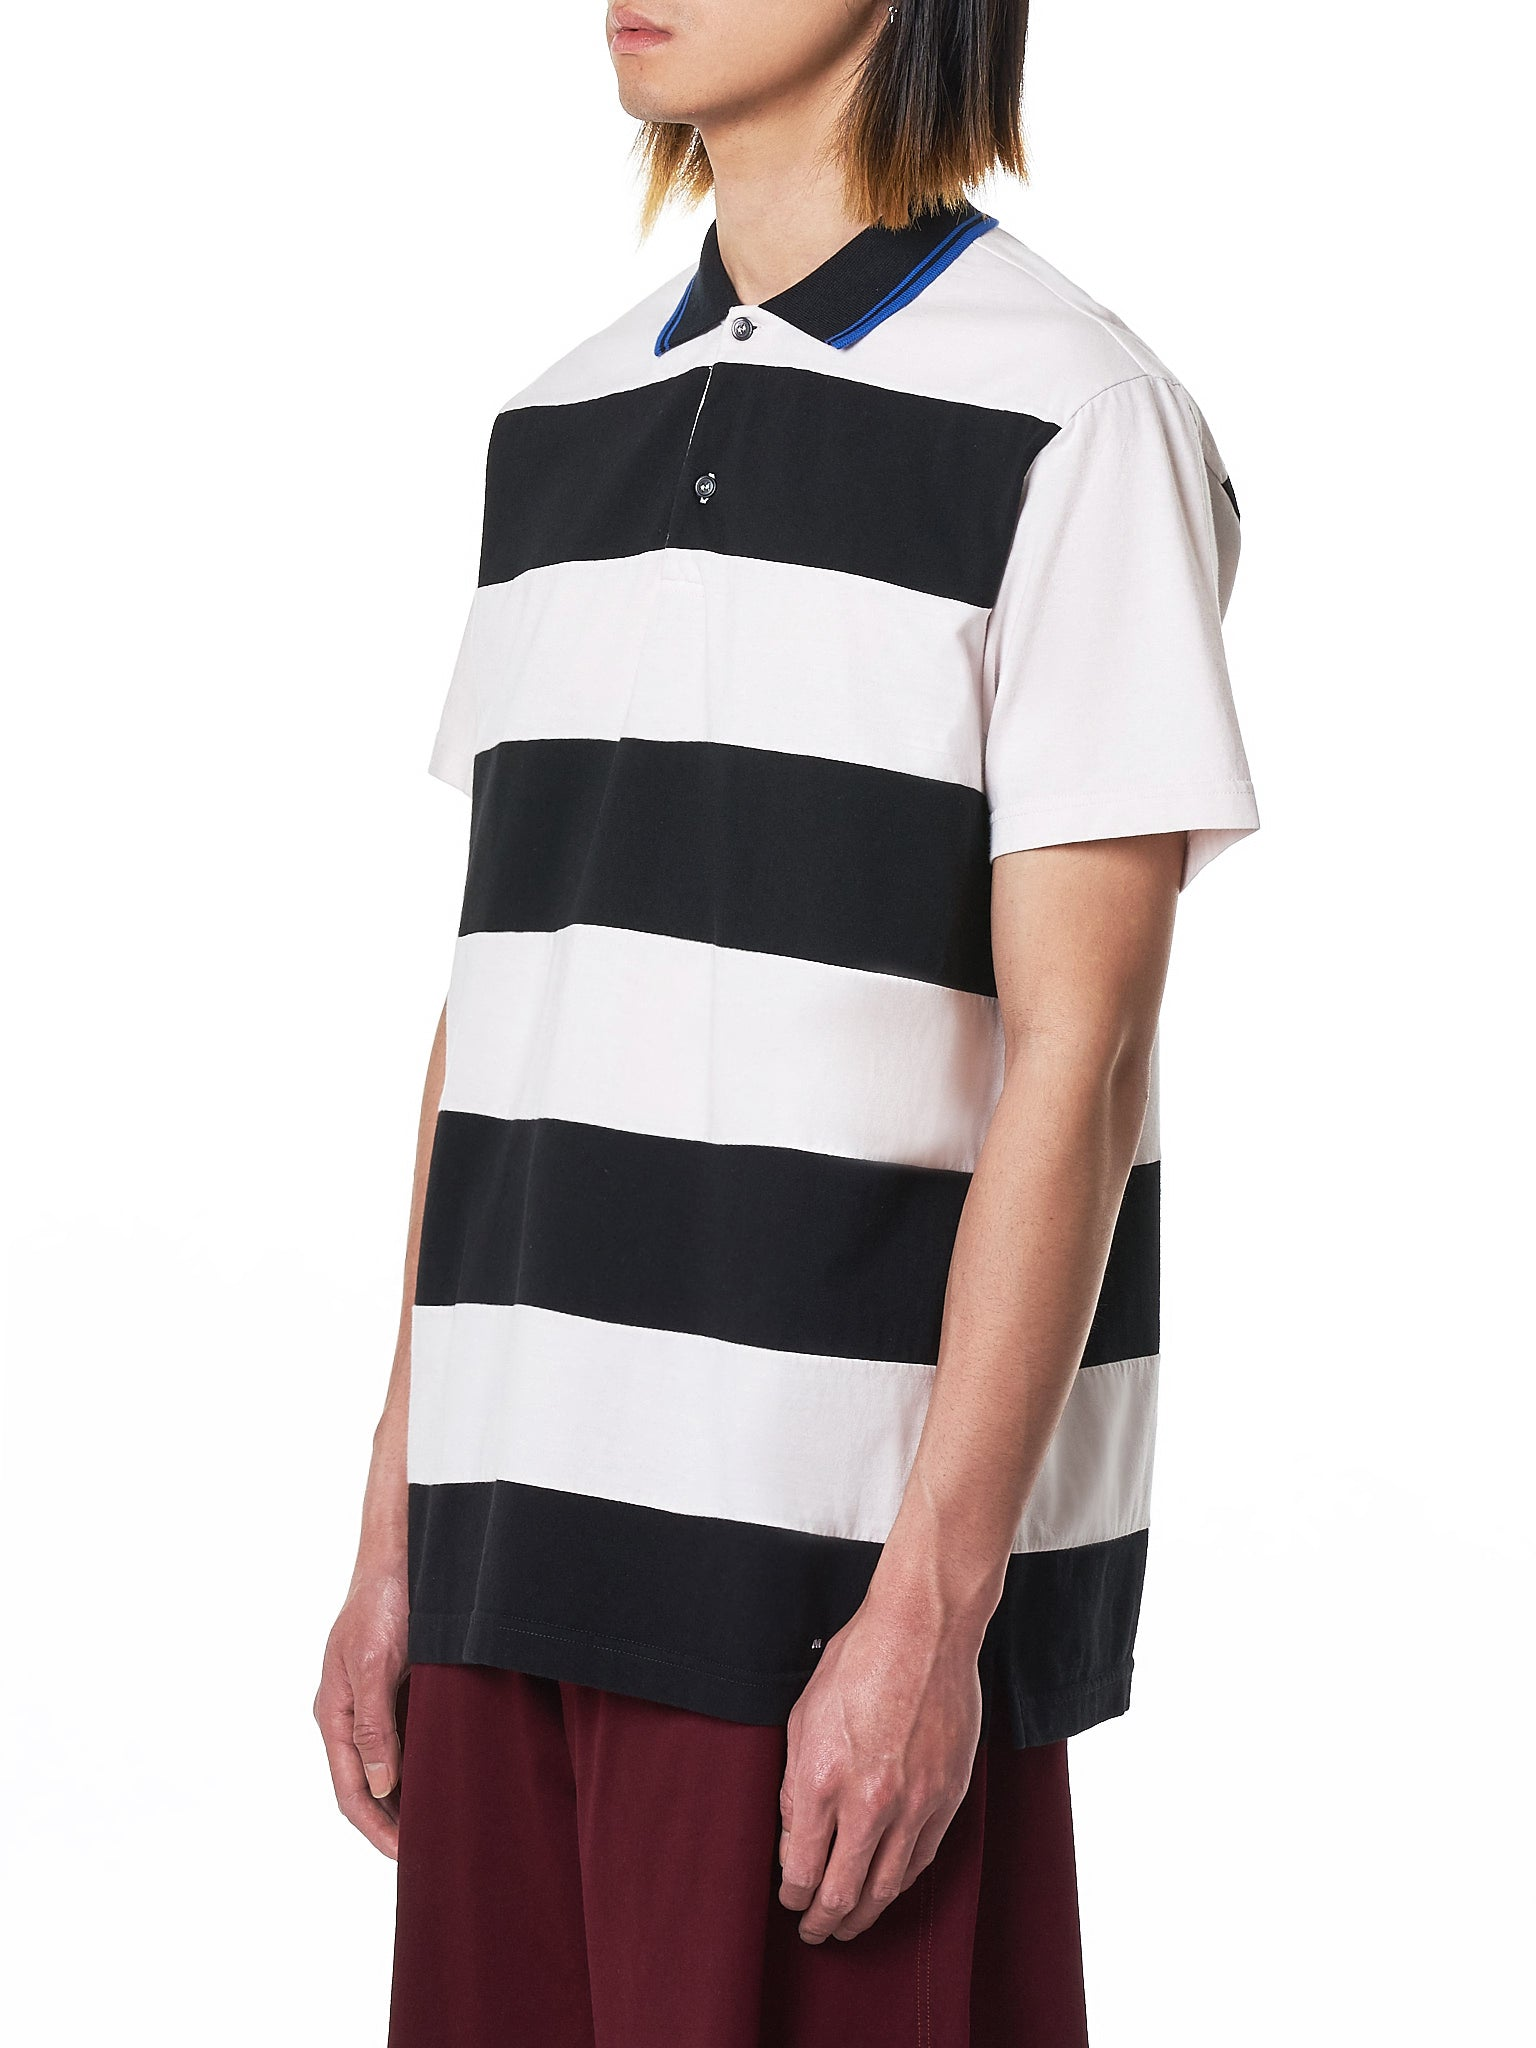 Marni Striped Polo - Hlorenzo Side